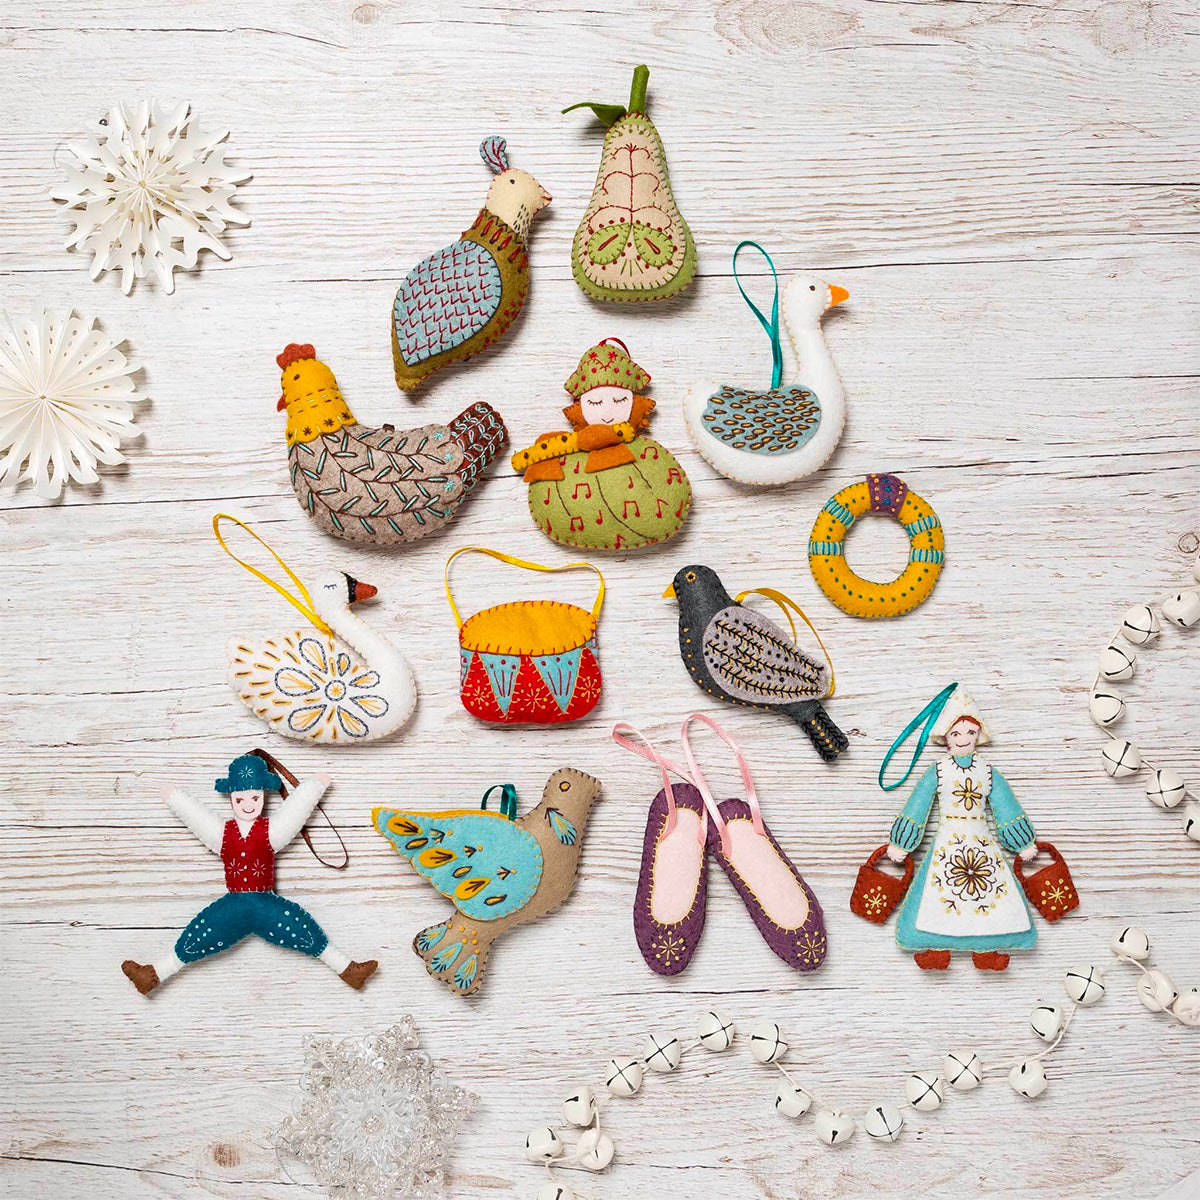 12 Days of Christmas Felt Ornament Kit - French Hen